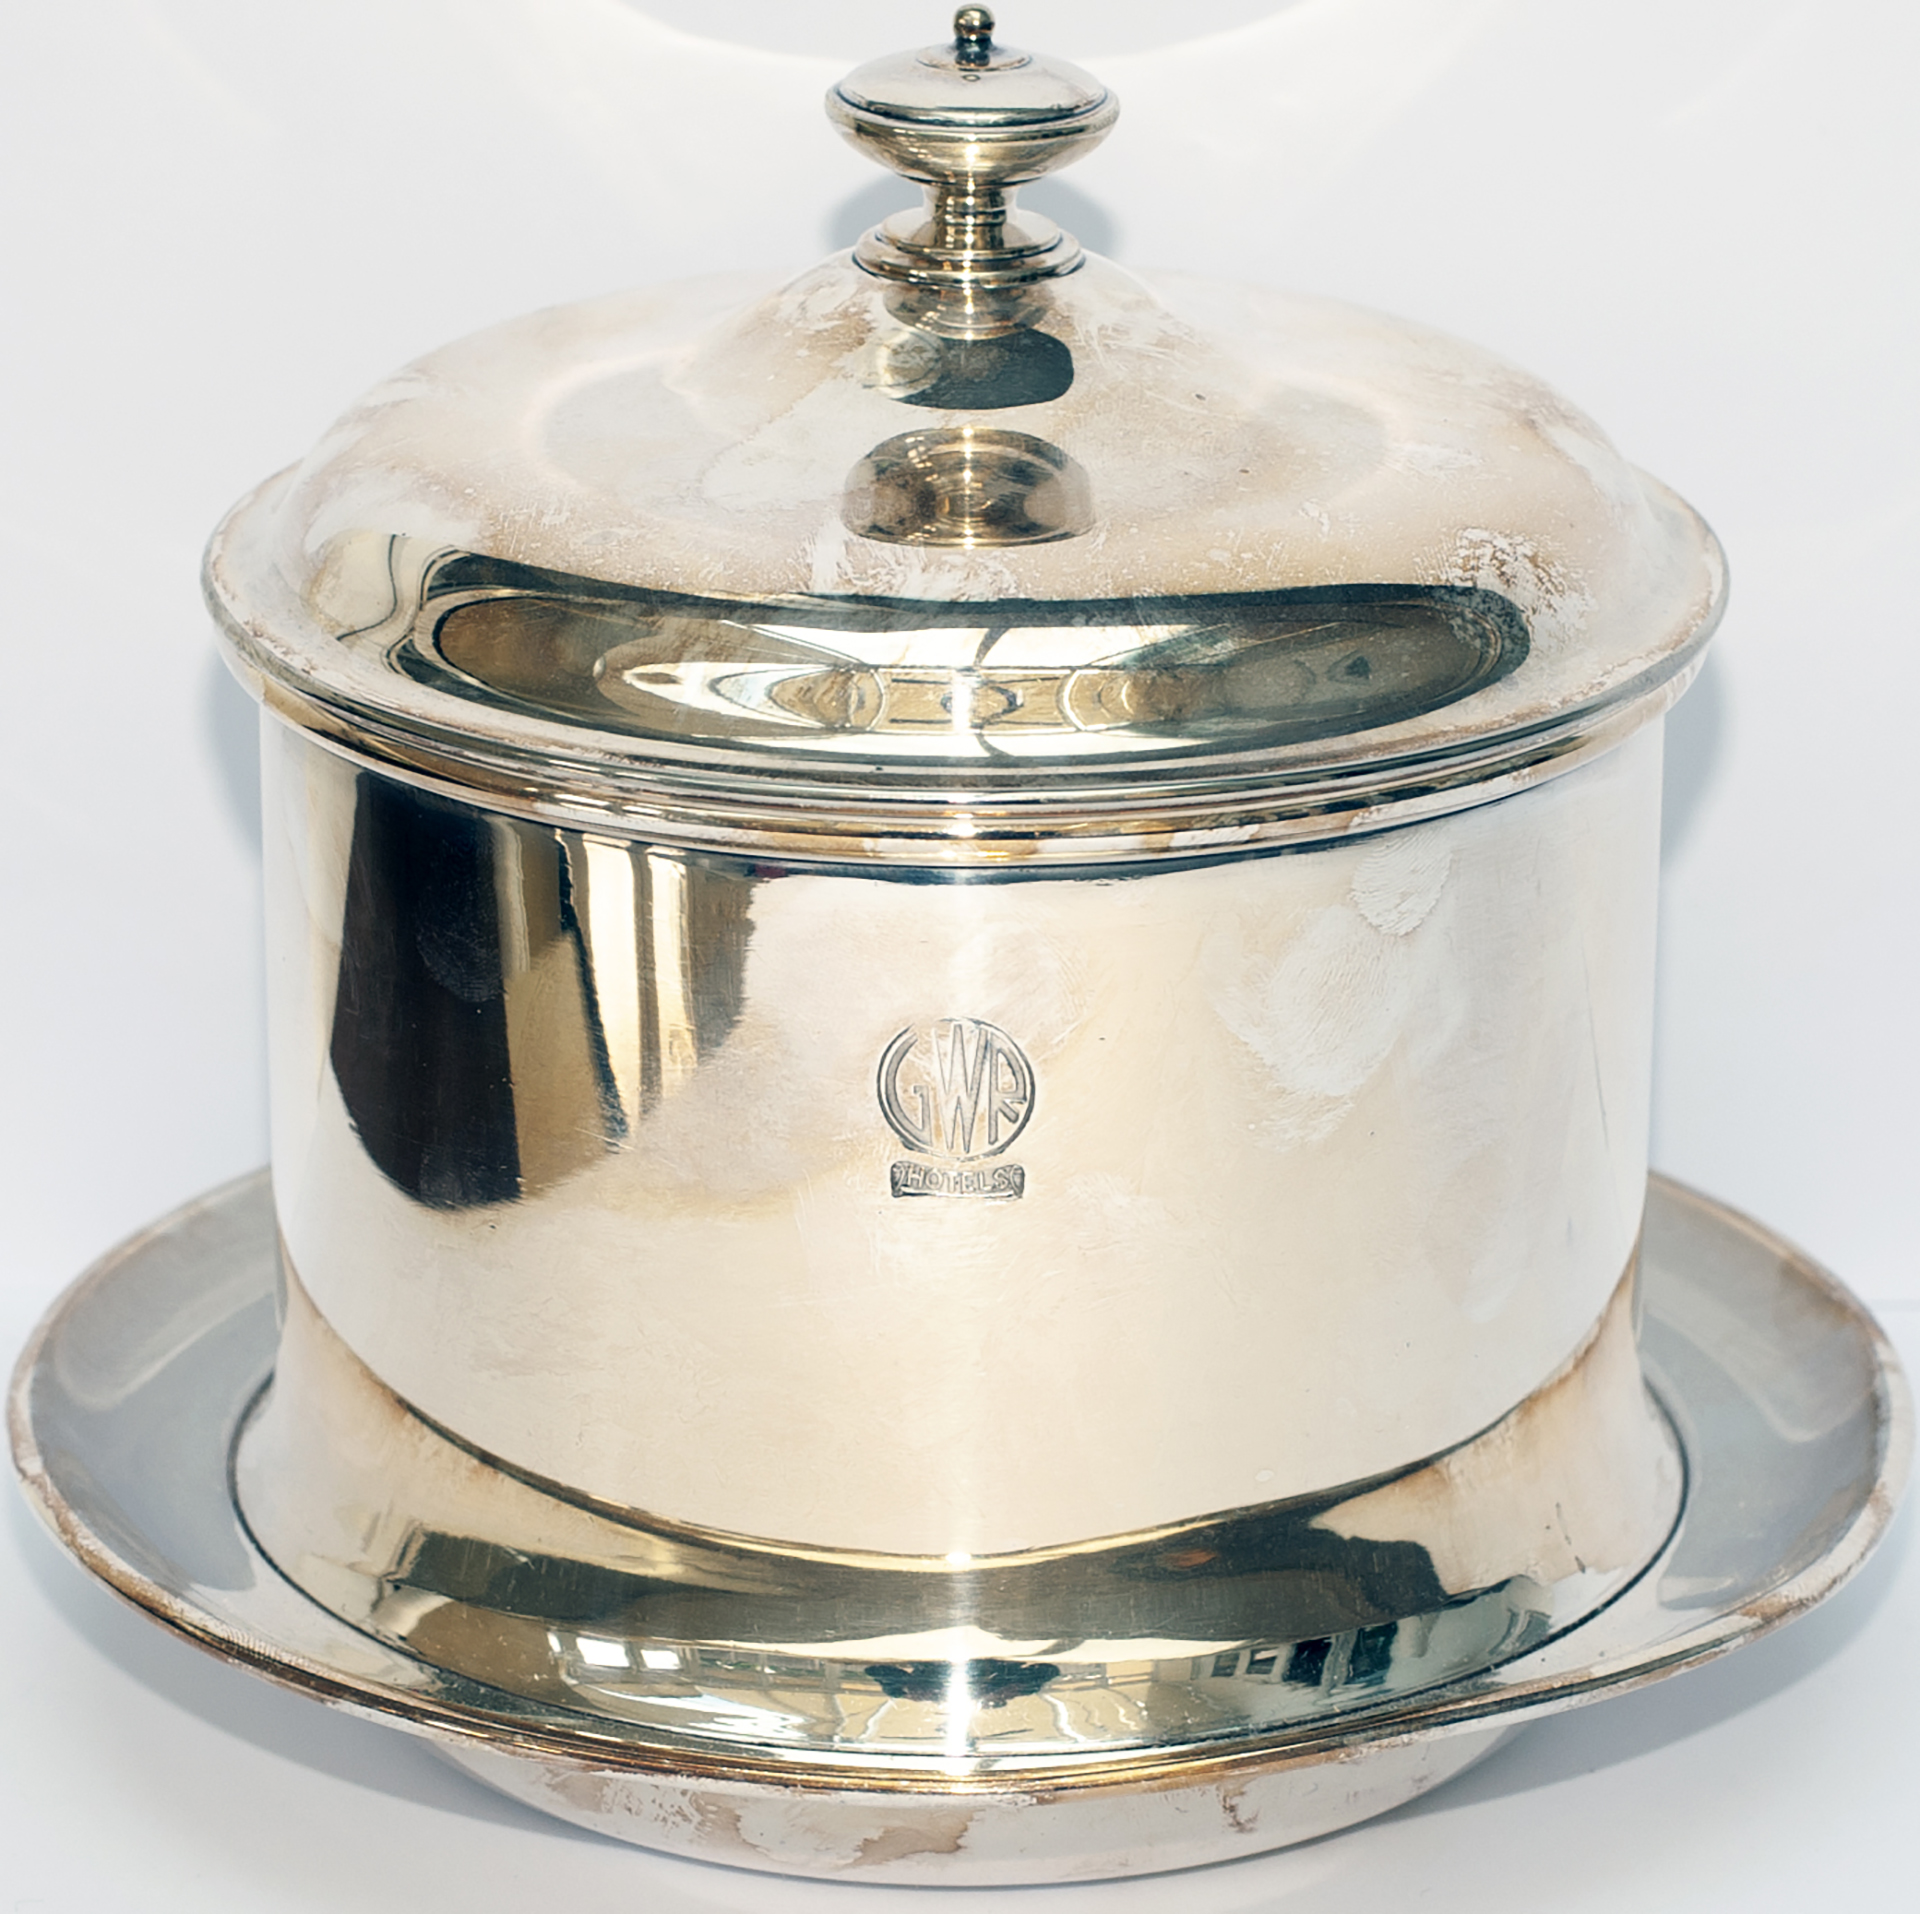 GWR silverplate BISCUIT BARREL face marked GWR HOTELS and base marked Elkington Plate and date